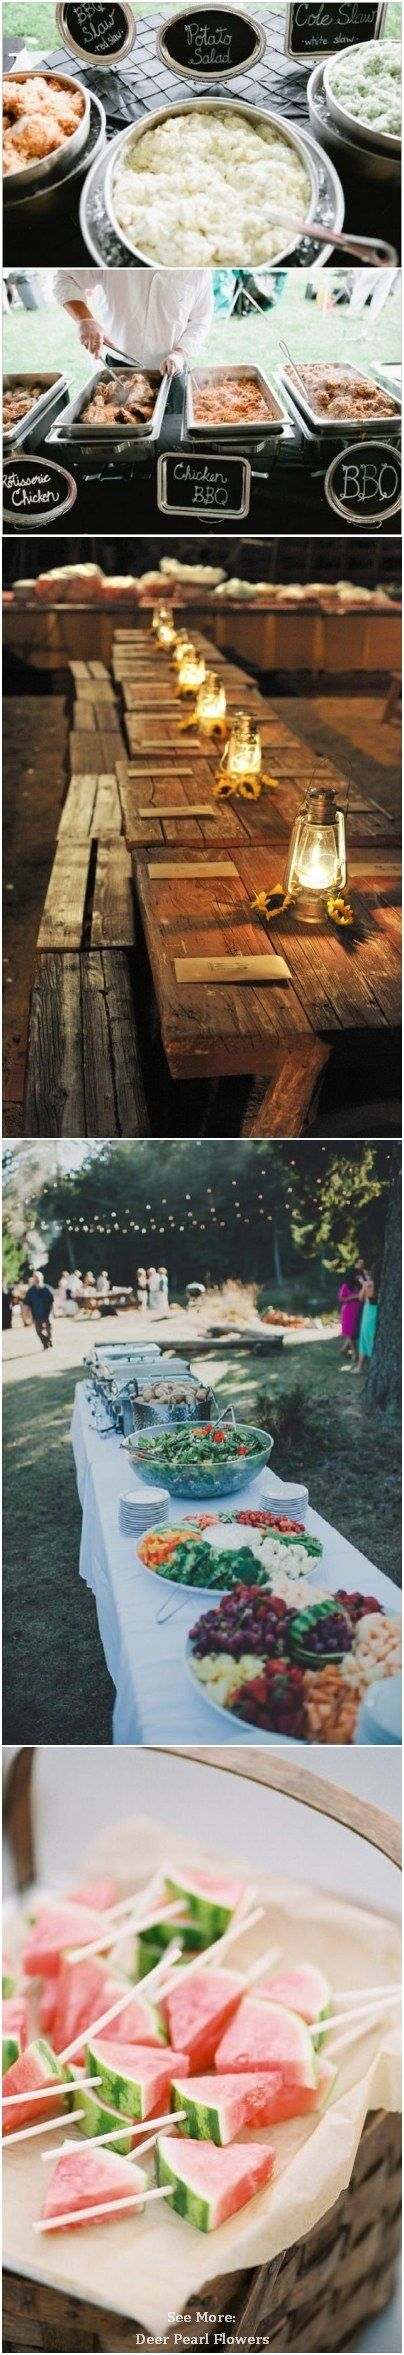 Top 25 Rustic Barbecue Bbq Wedding Ideas Country Weddings Ideen